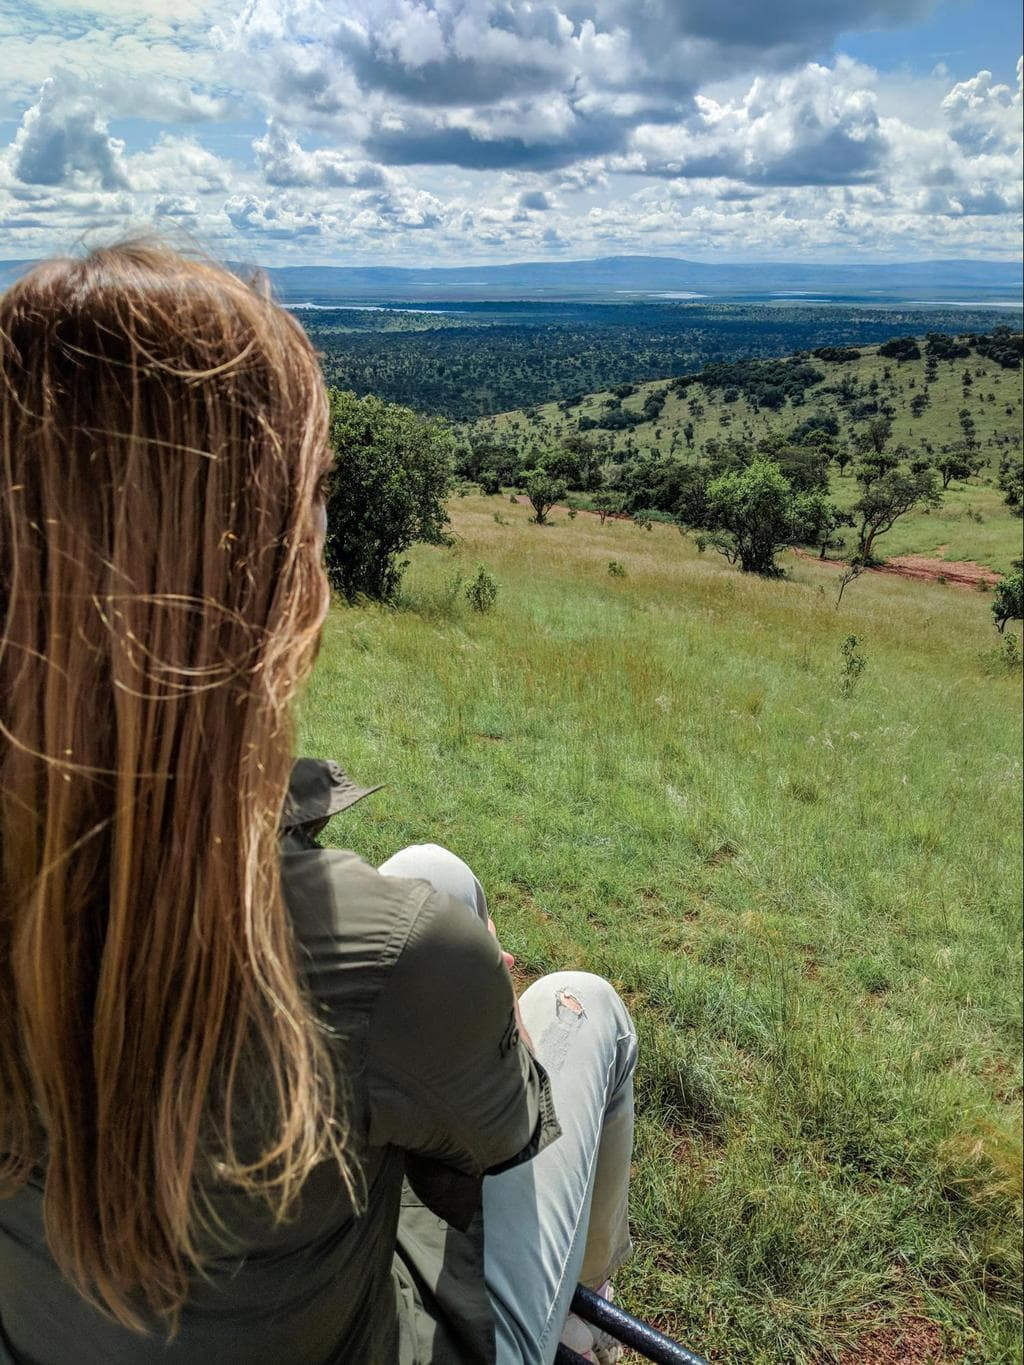 The landscapes in Akagera National Park